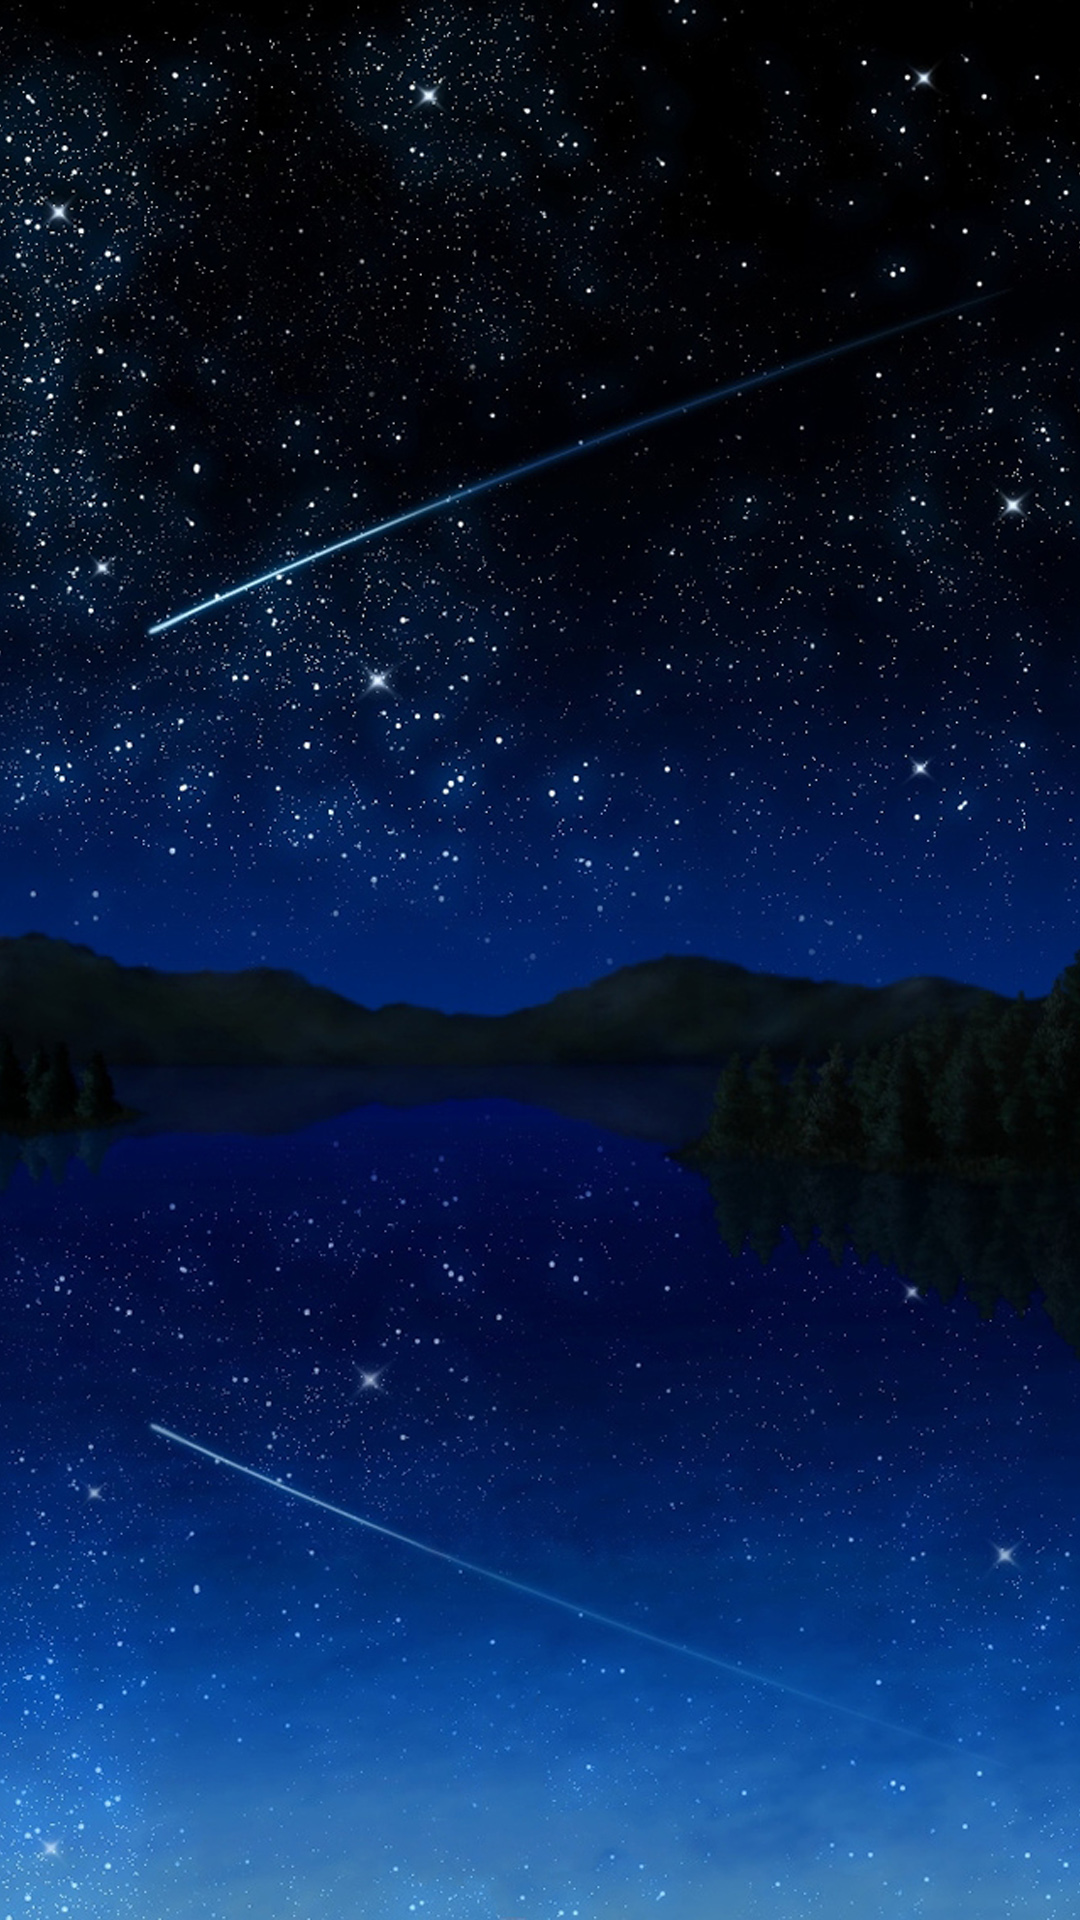 Shooting Star Sky Wallpapers for Galaxy S5 1080x1920